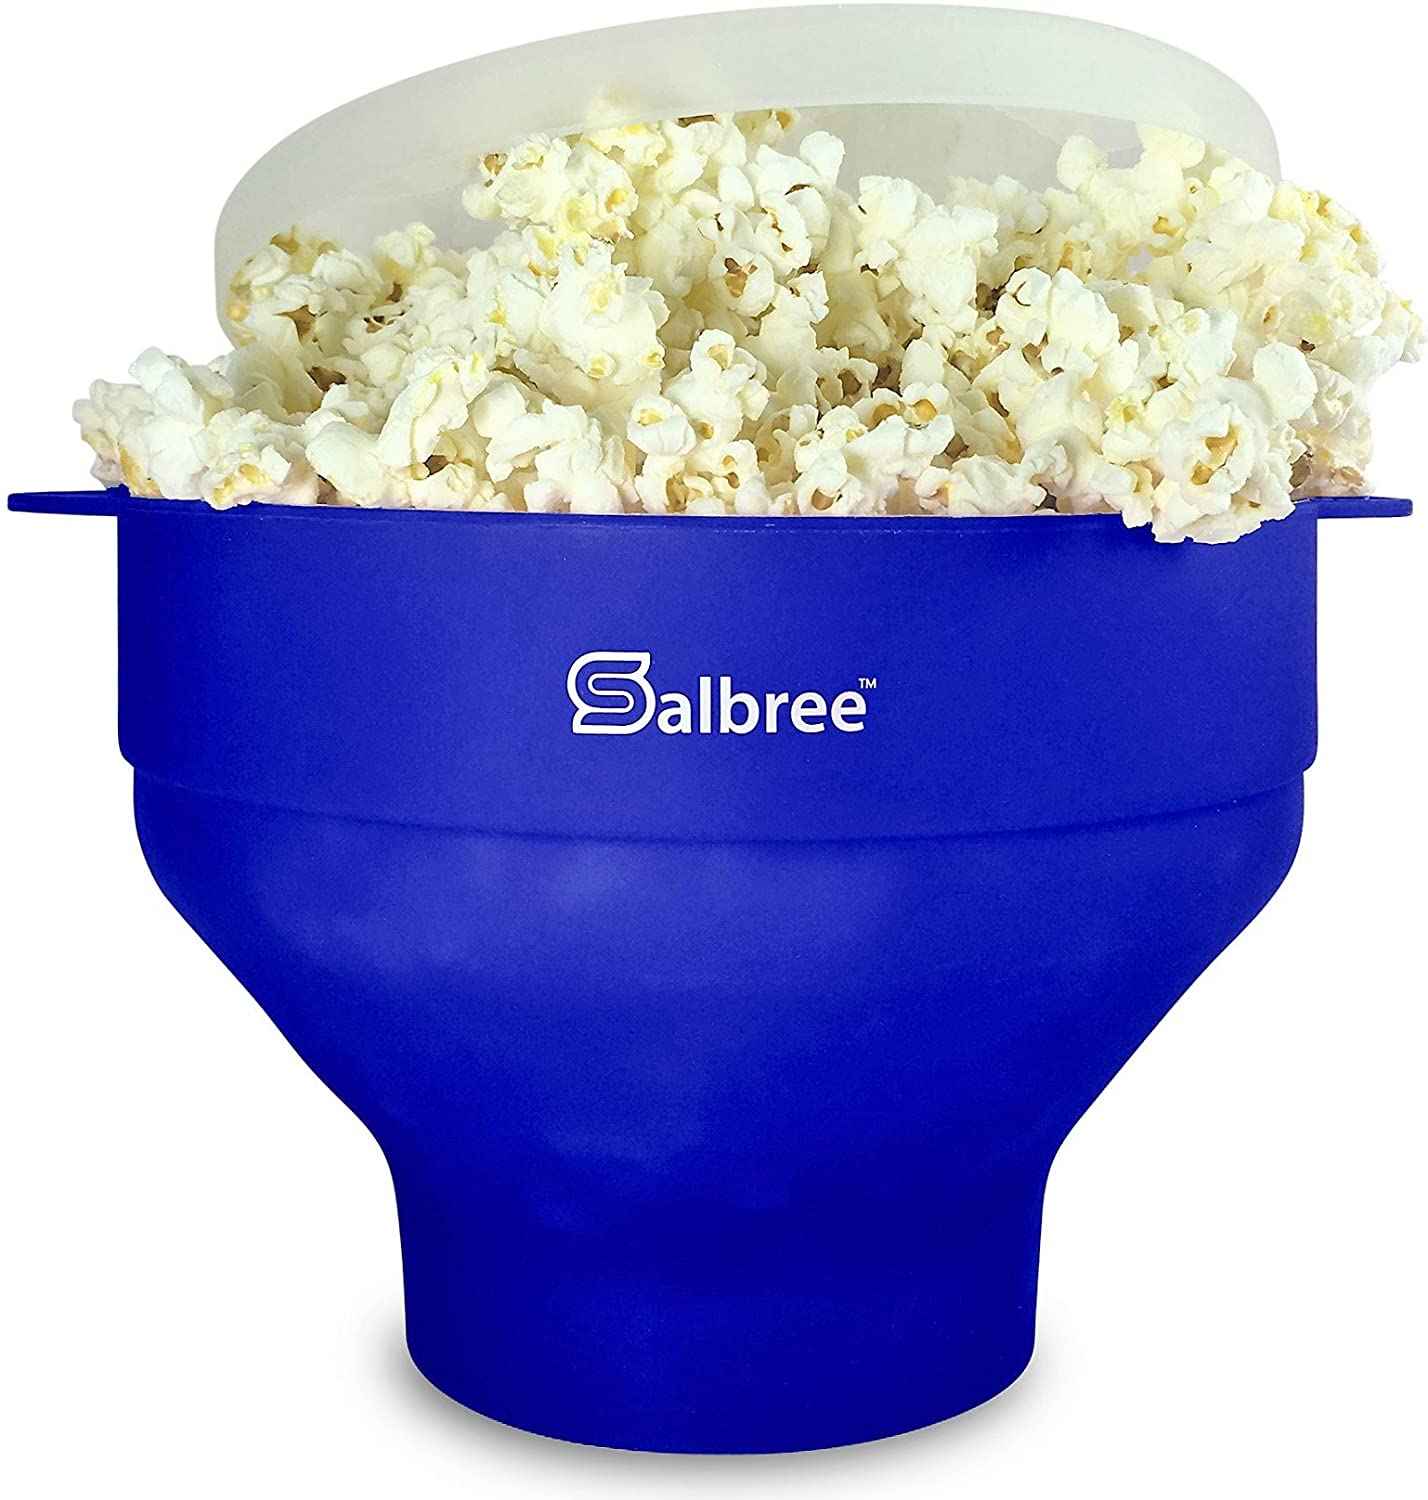 Original Salbree Microwave